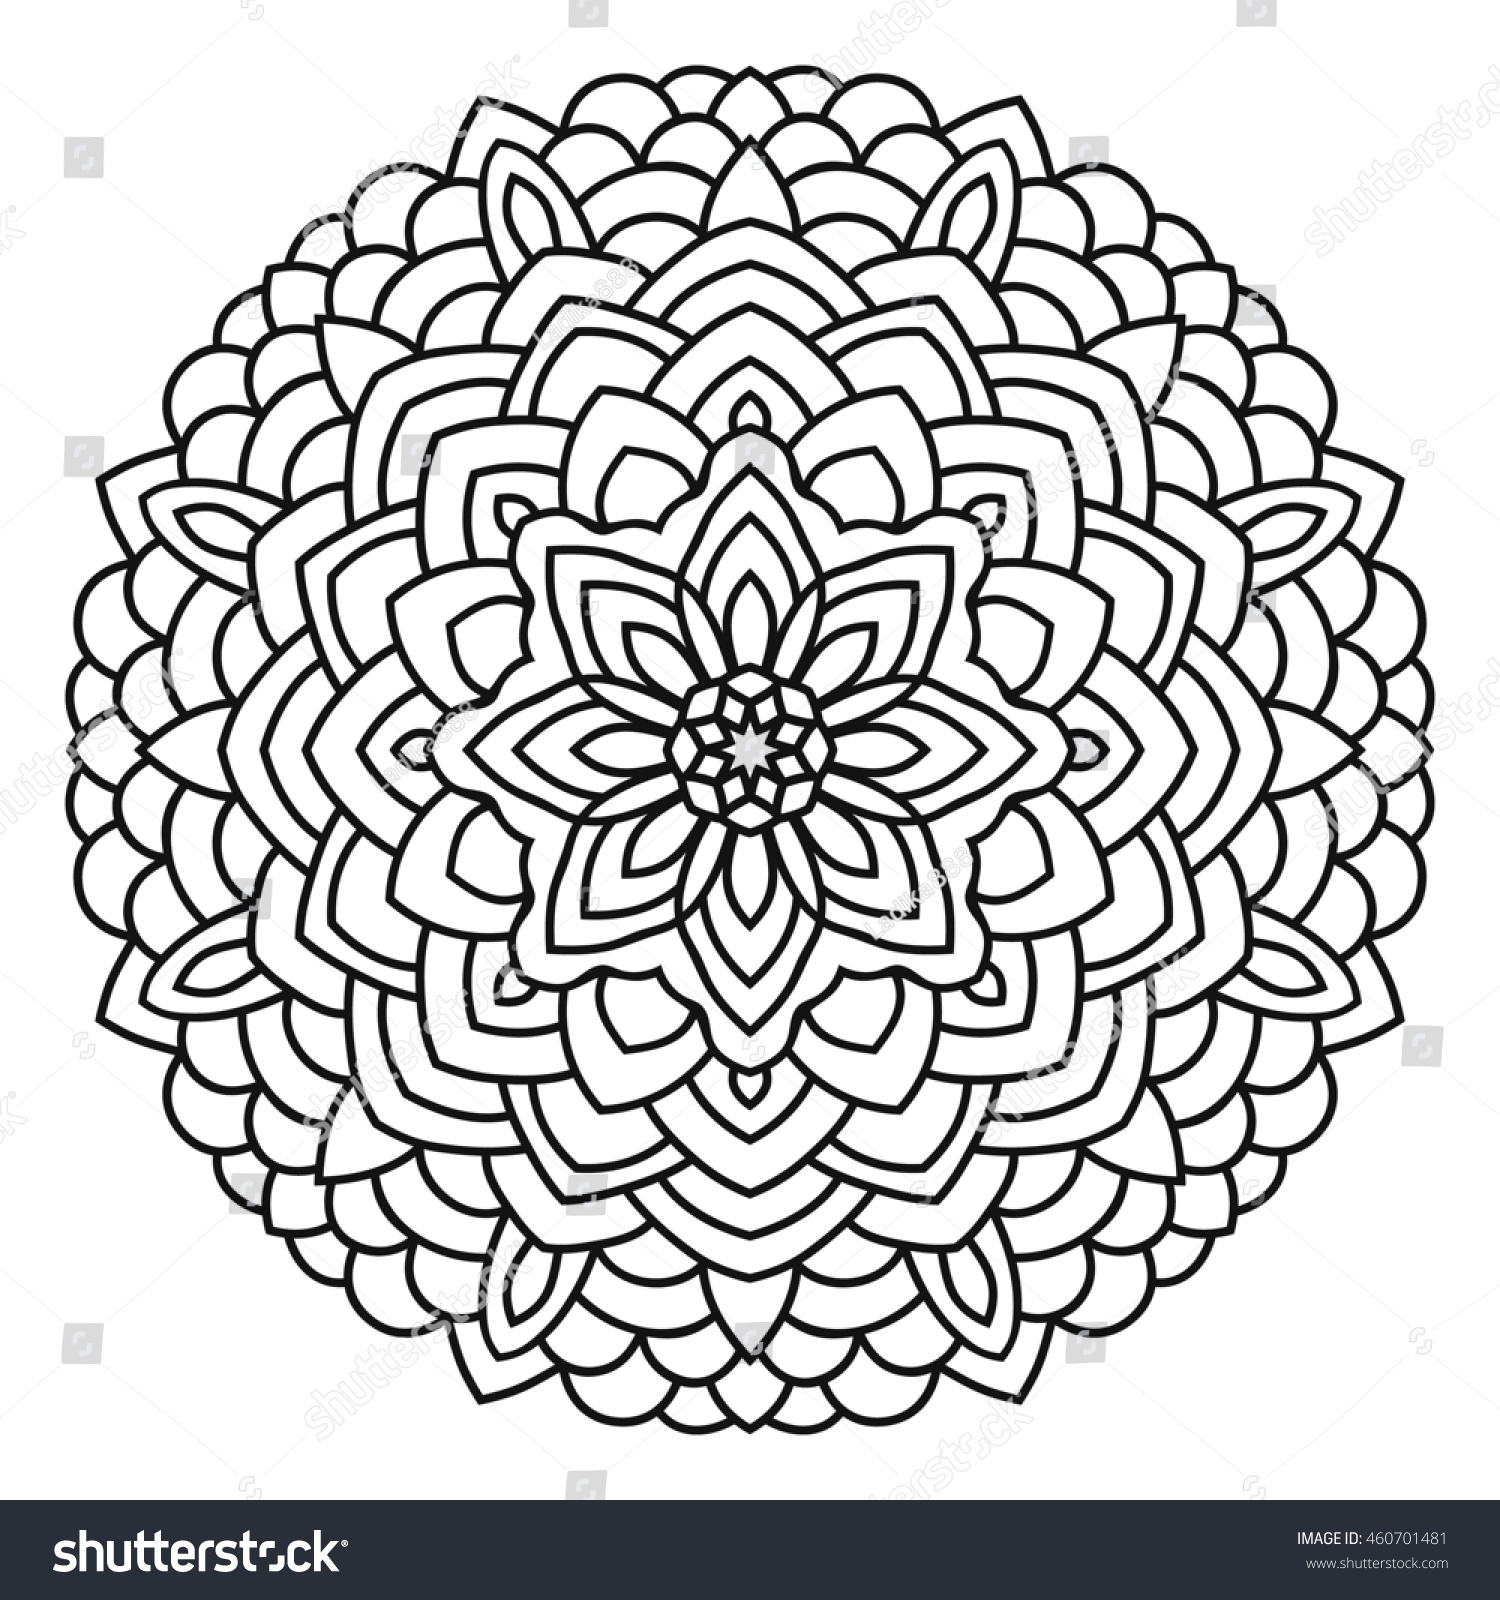 symmetrical circular pattern mandala oriental pattern coloring page for adults